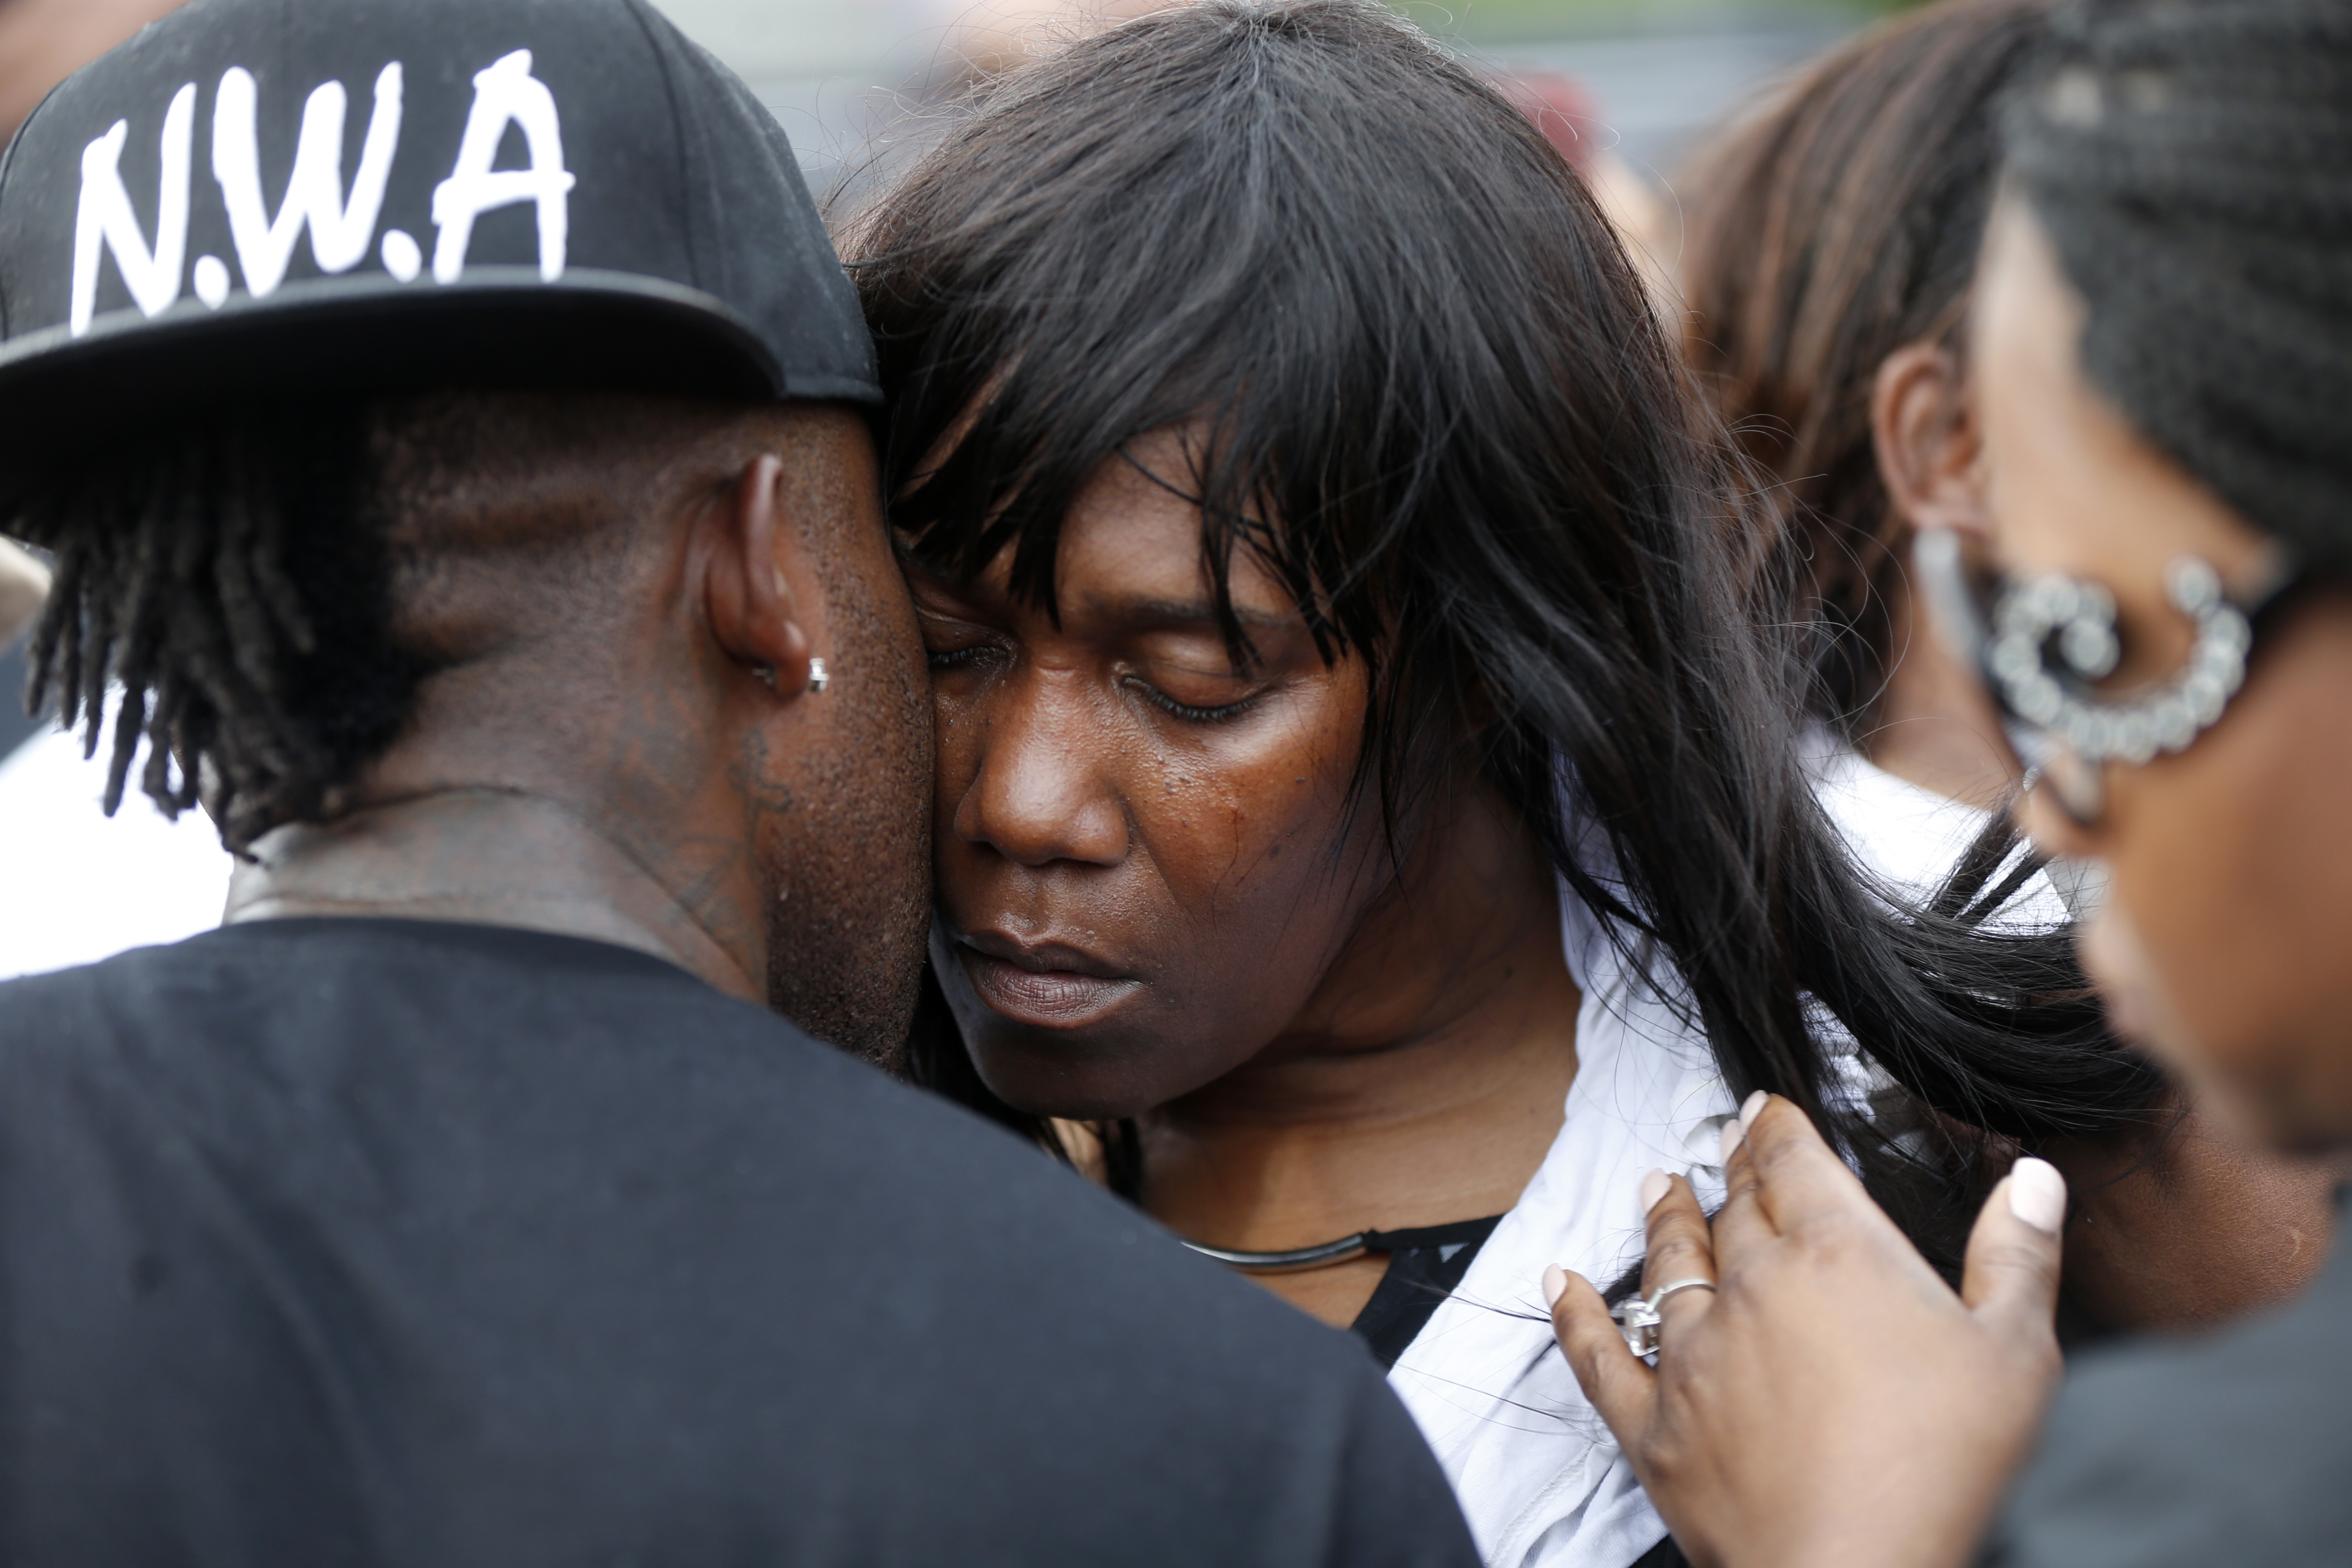 Sandra Sterling, aunt of Alton Sterling, is comforted at a vigil outside the Triple S convenience store in Baton Rouge, La., Wednesday, July 6, 2016